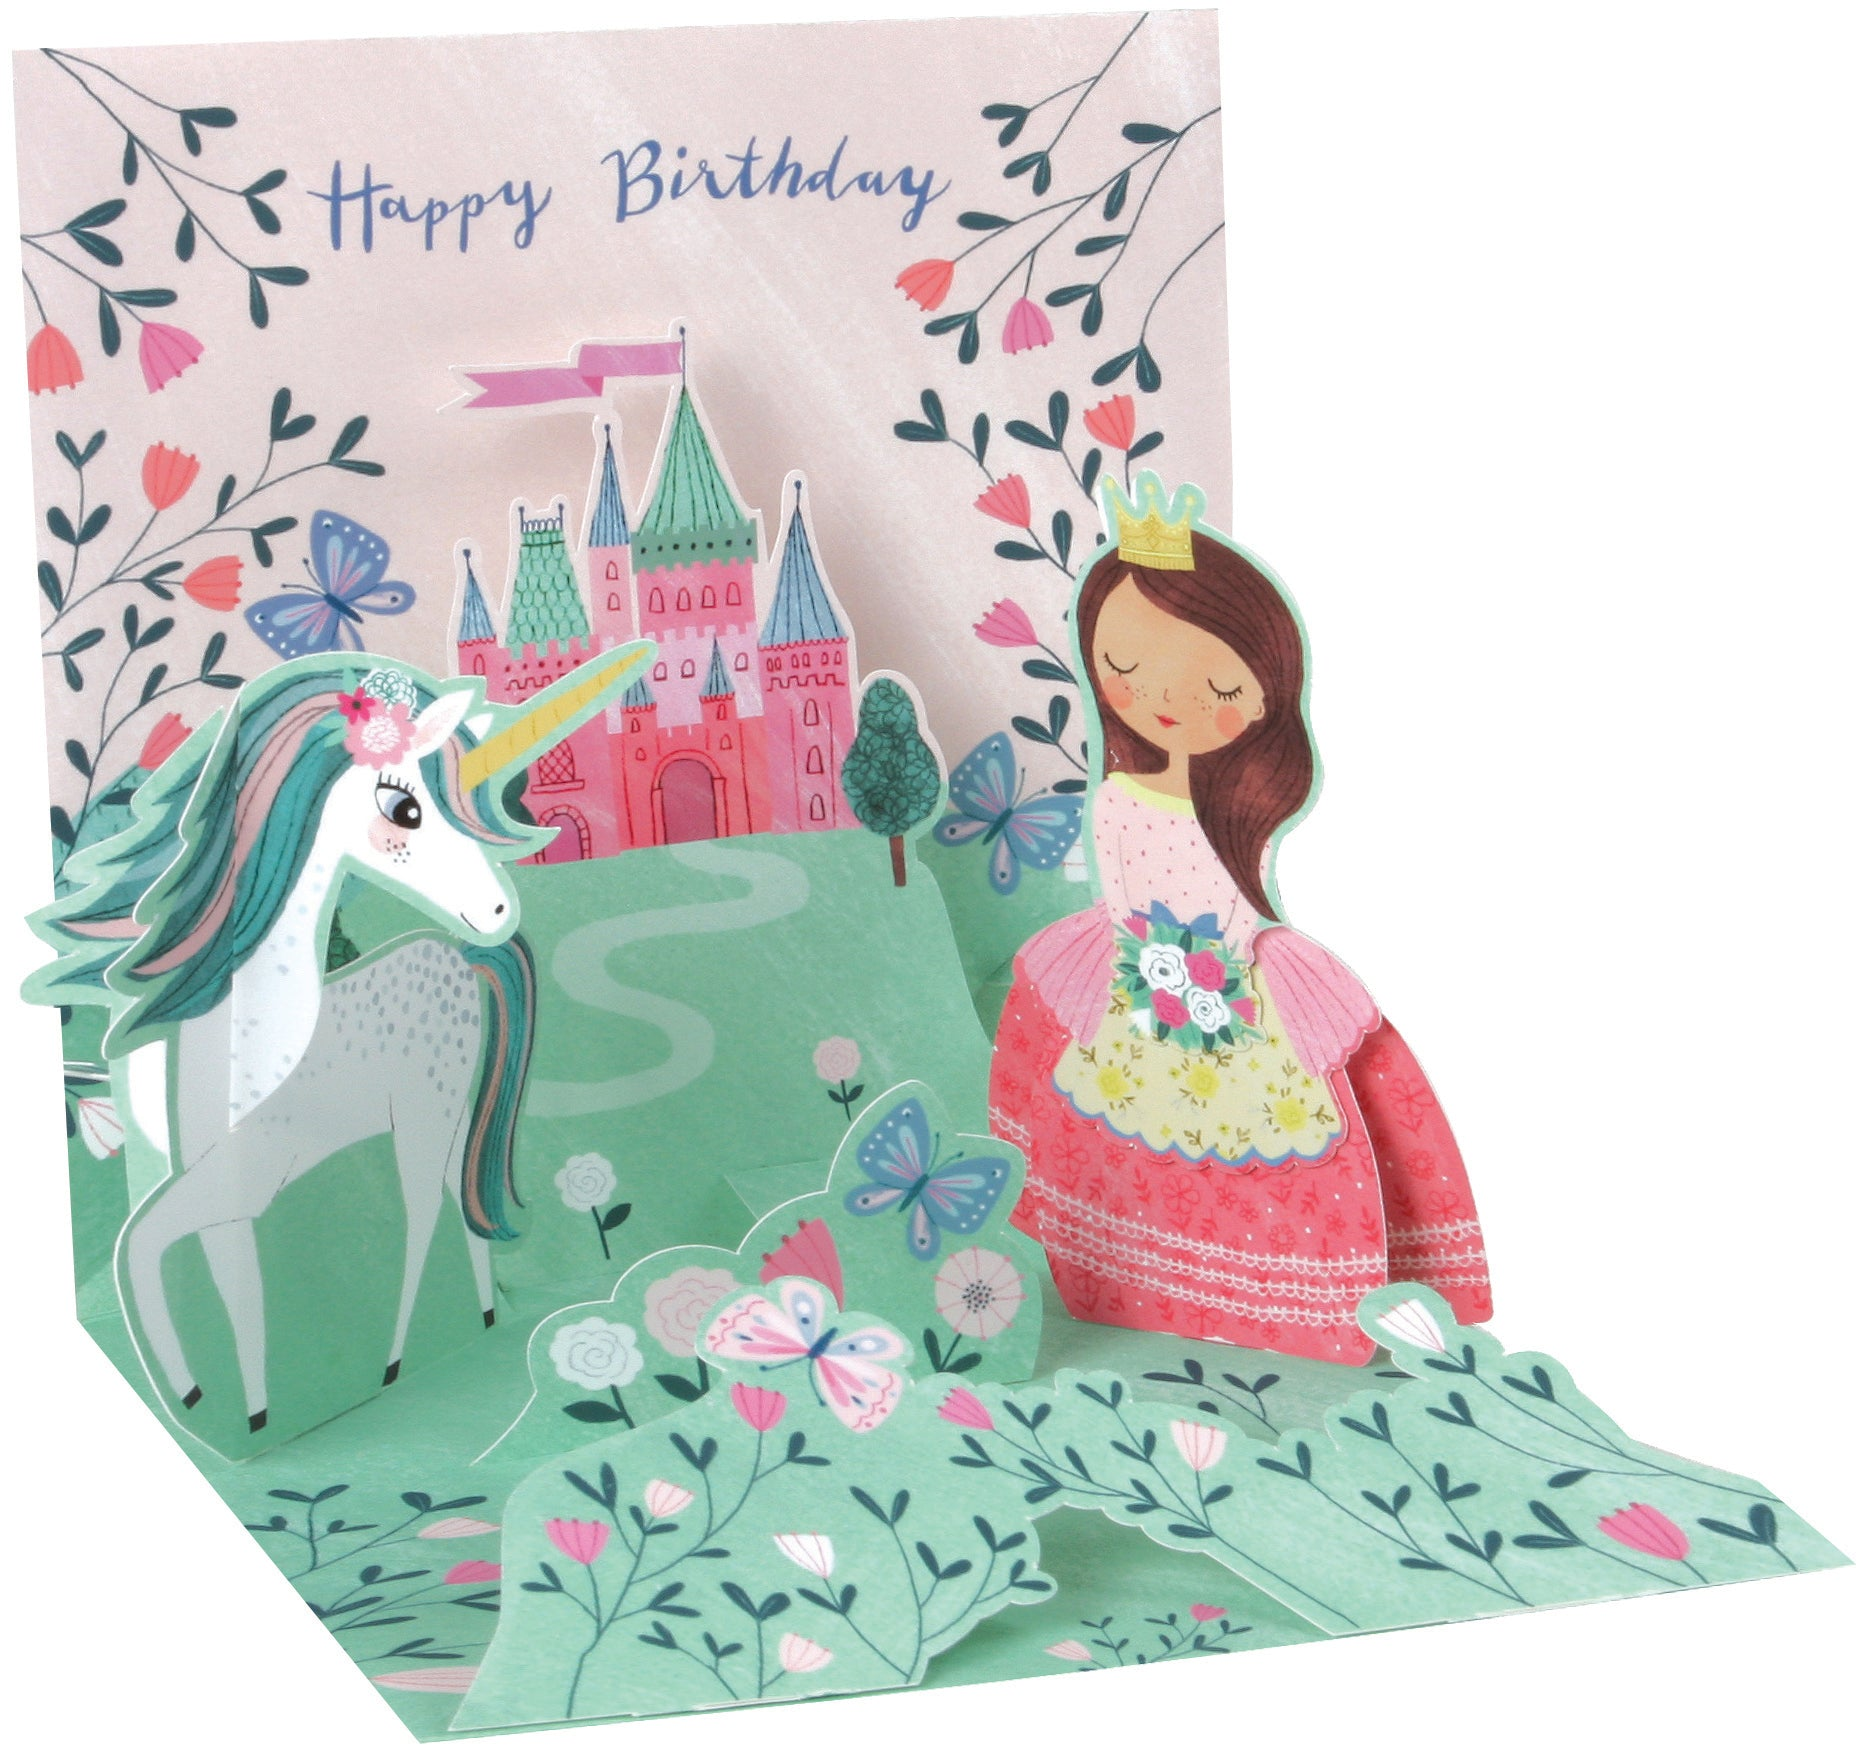 Princess and Unicorn Pop-Up Card - Heart of the Home PA